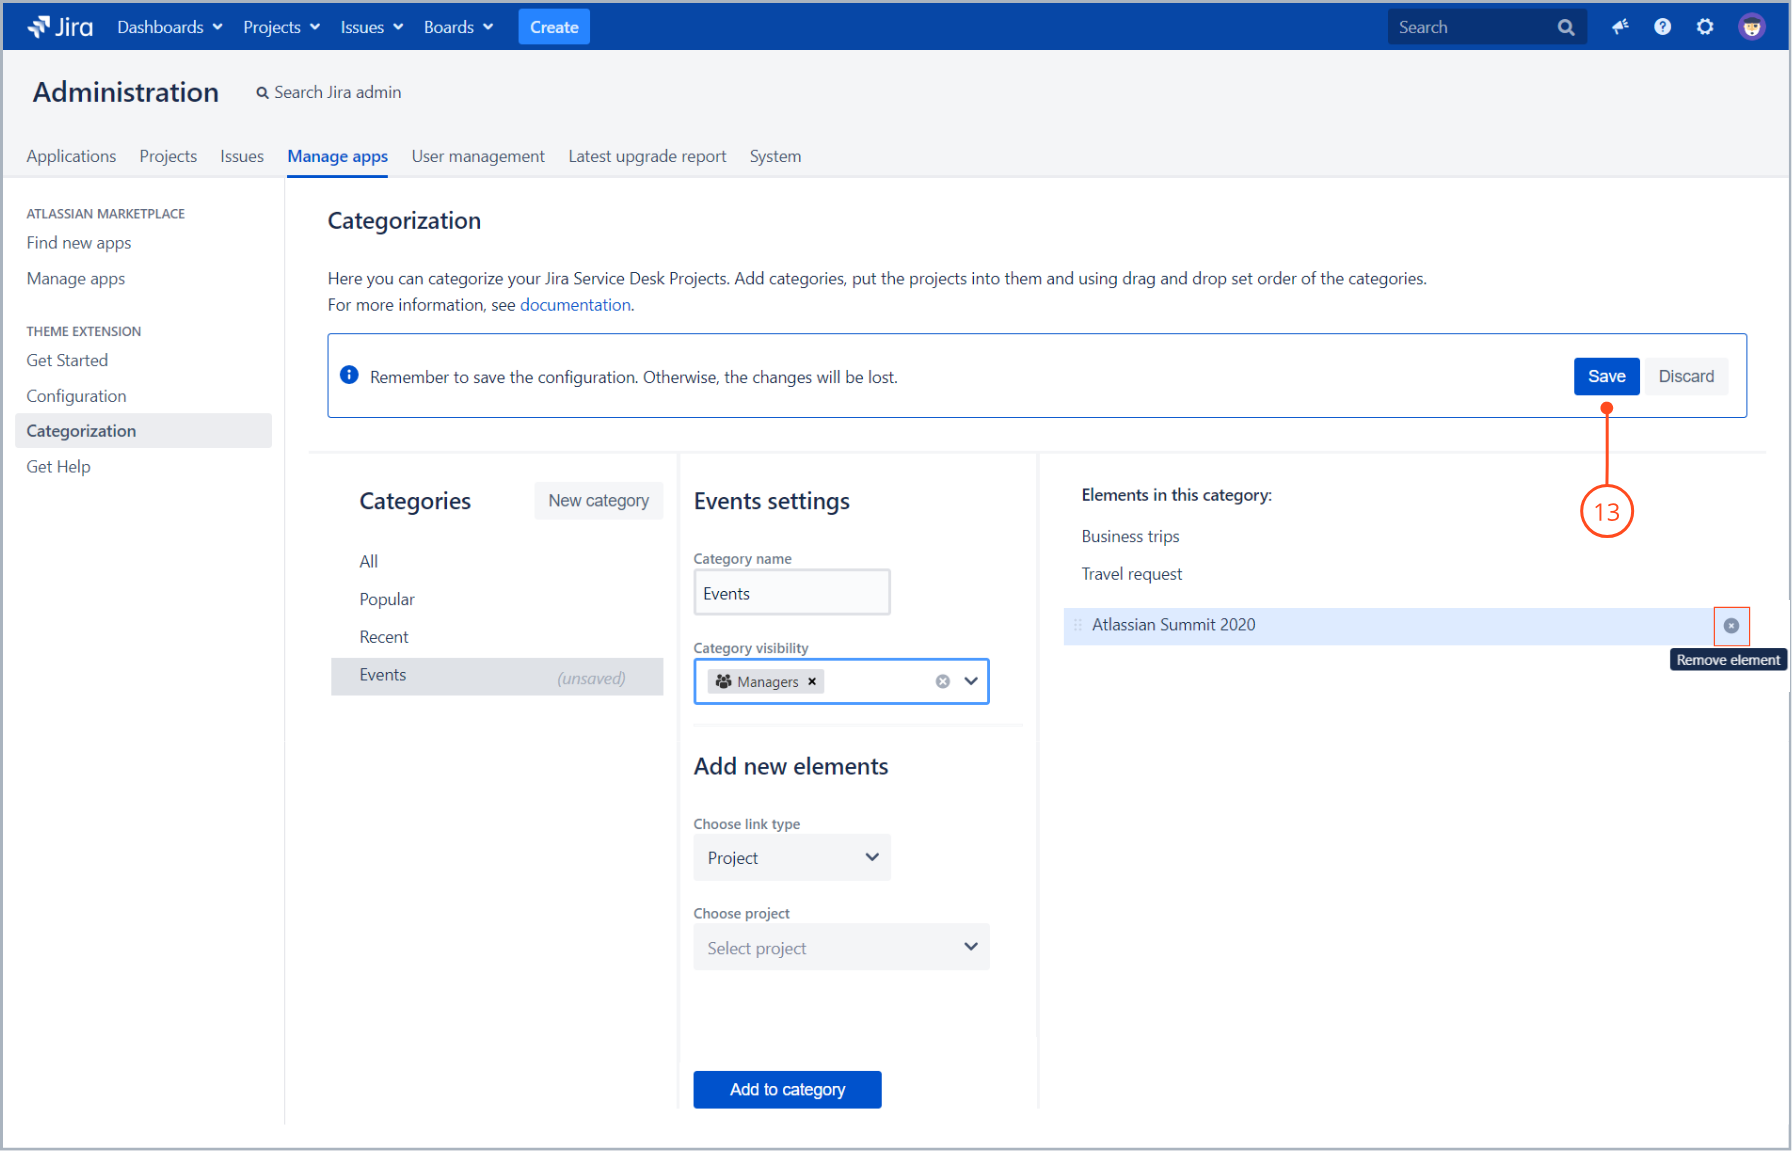 Save category configuration with Theme Extension for Jira Service Desk